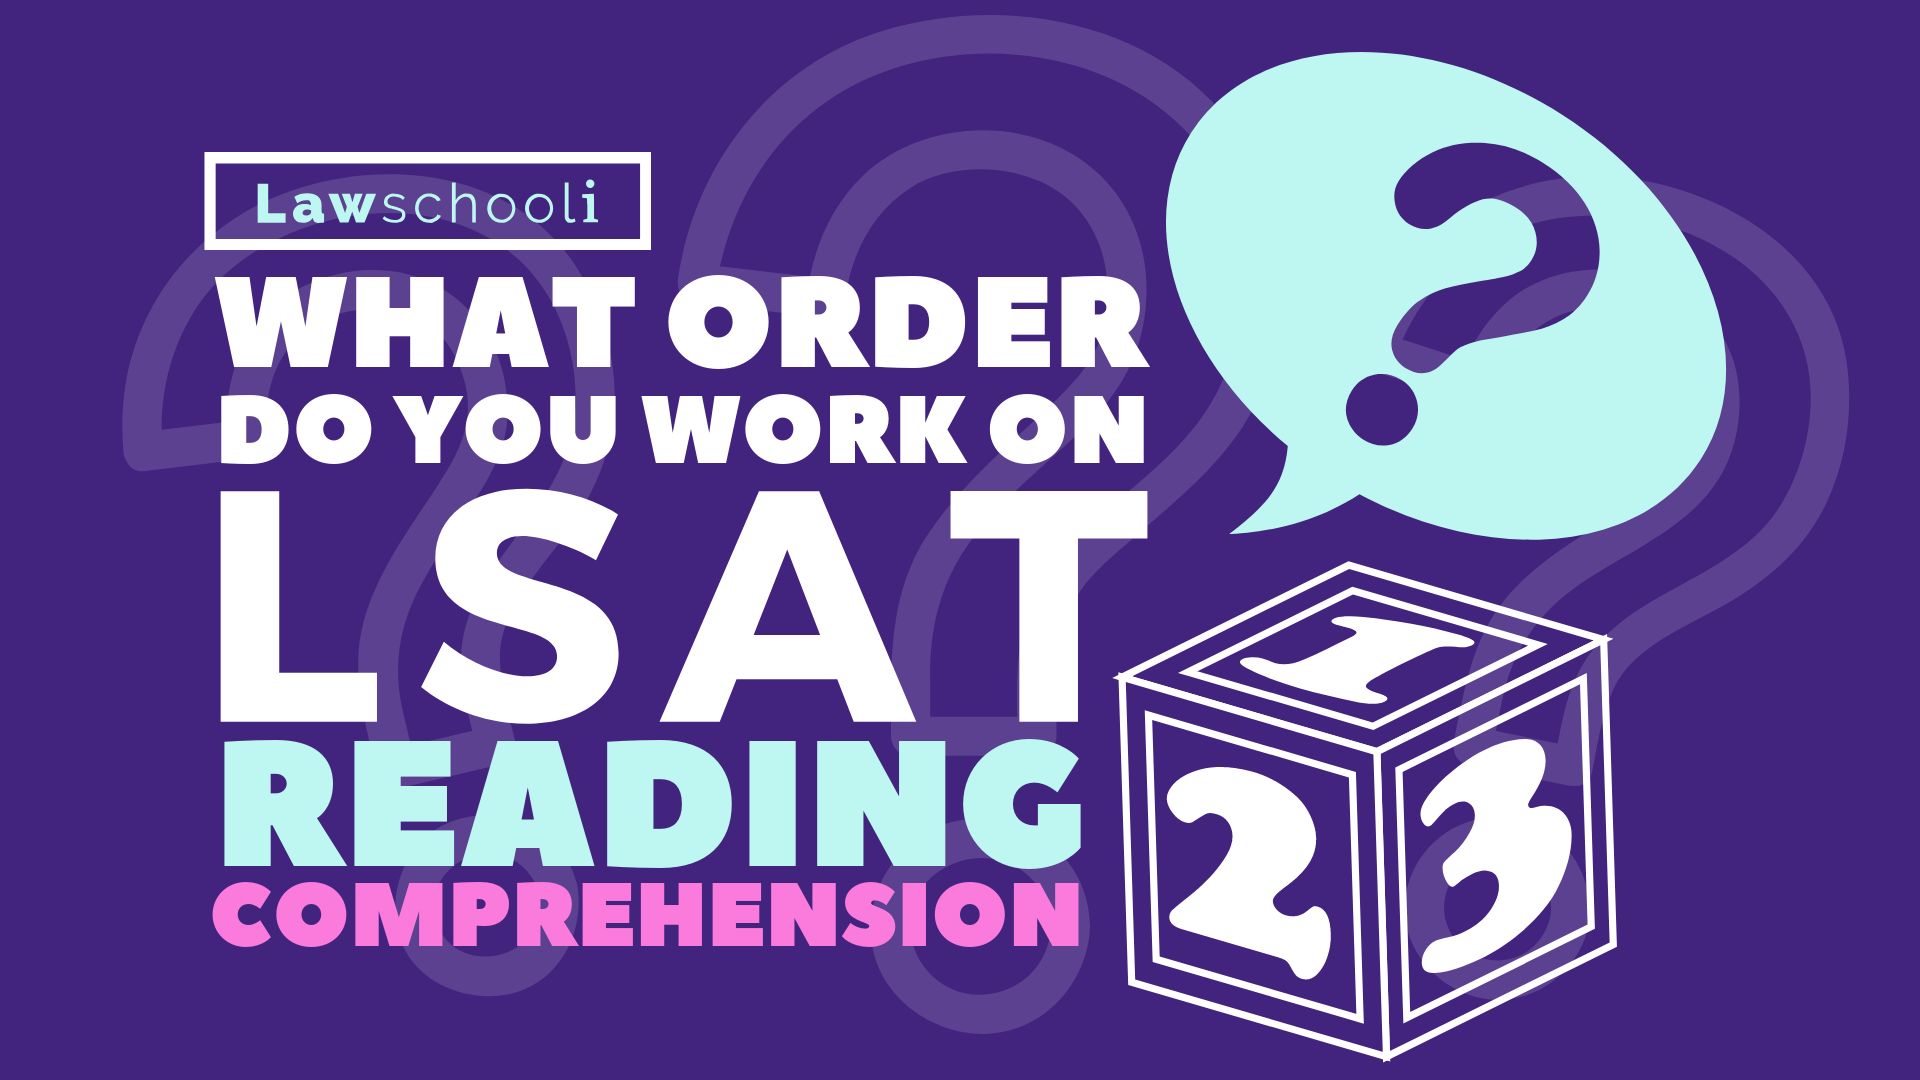 What Order Do You Work on The LSAT Reading Comprehension